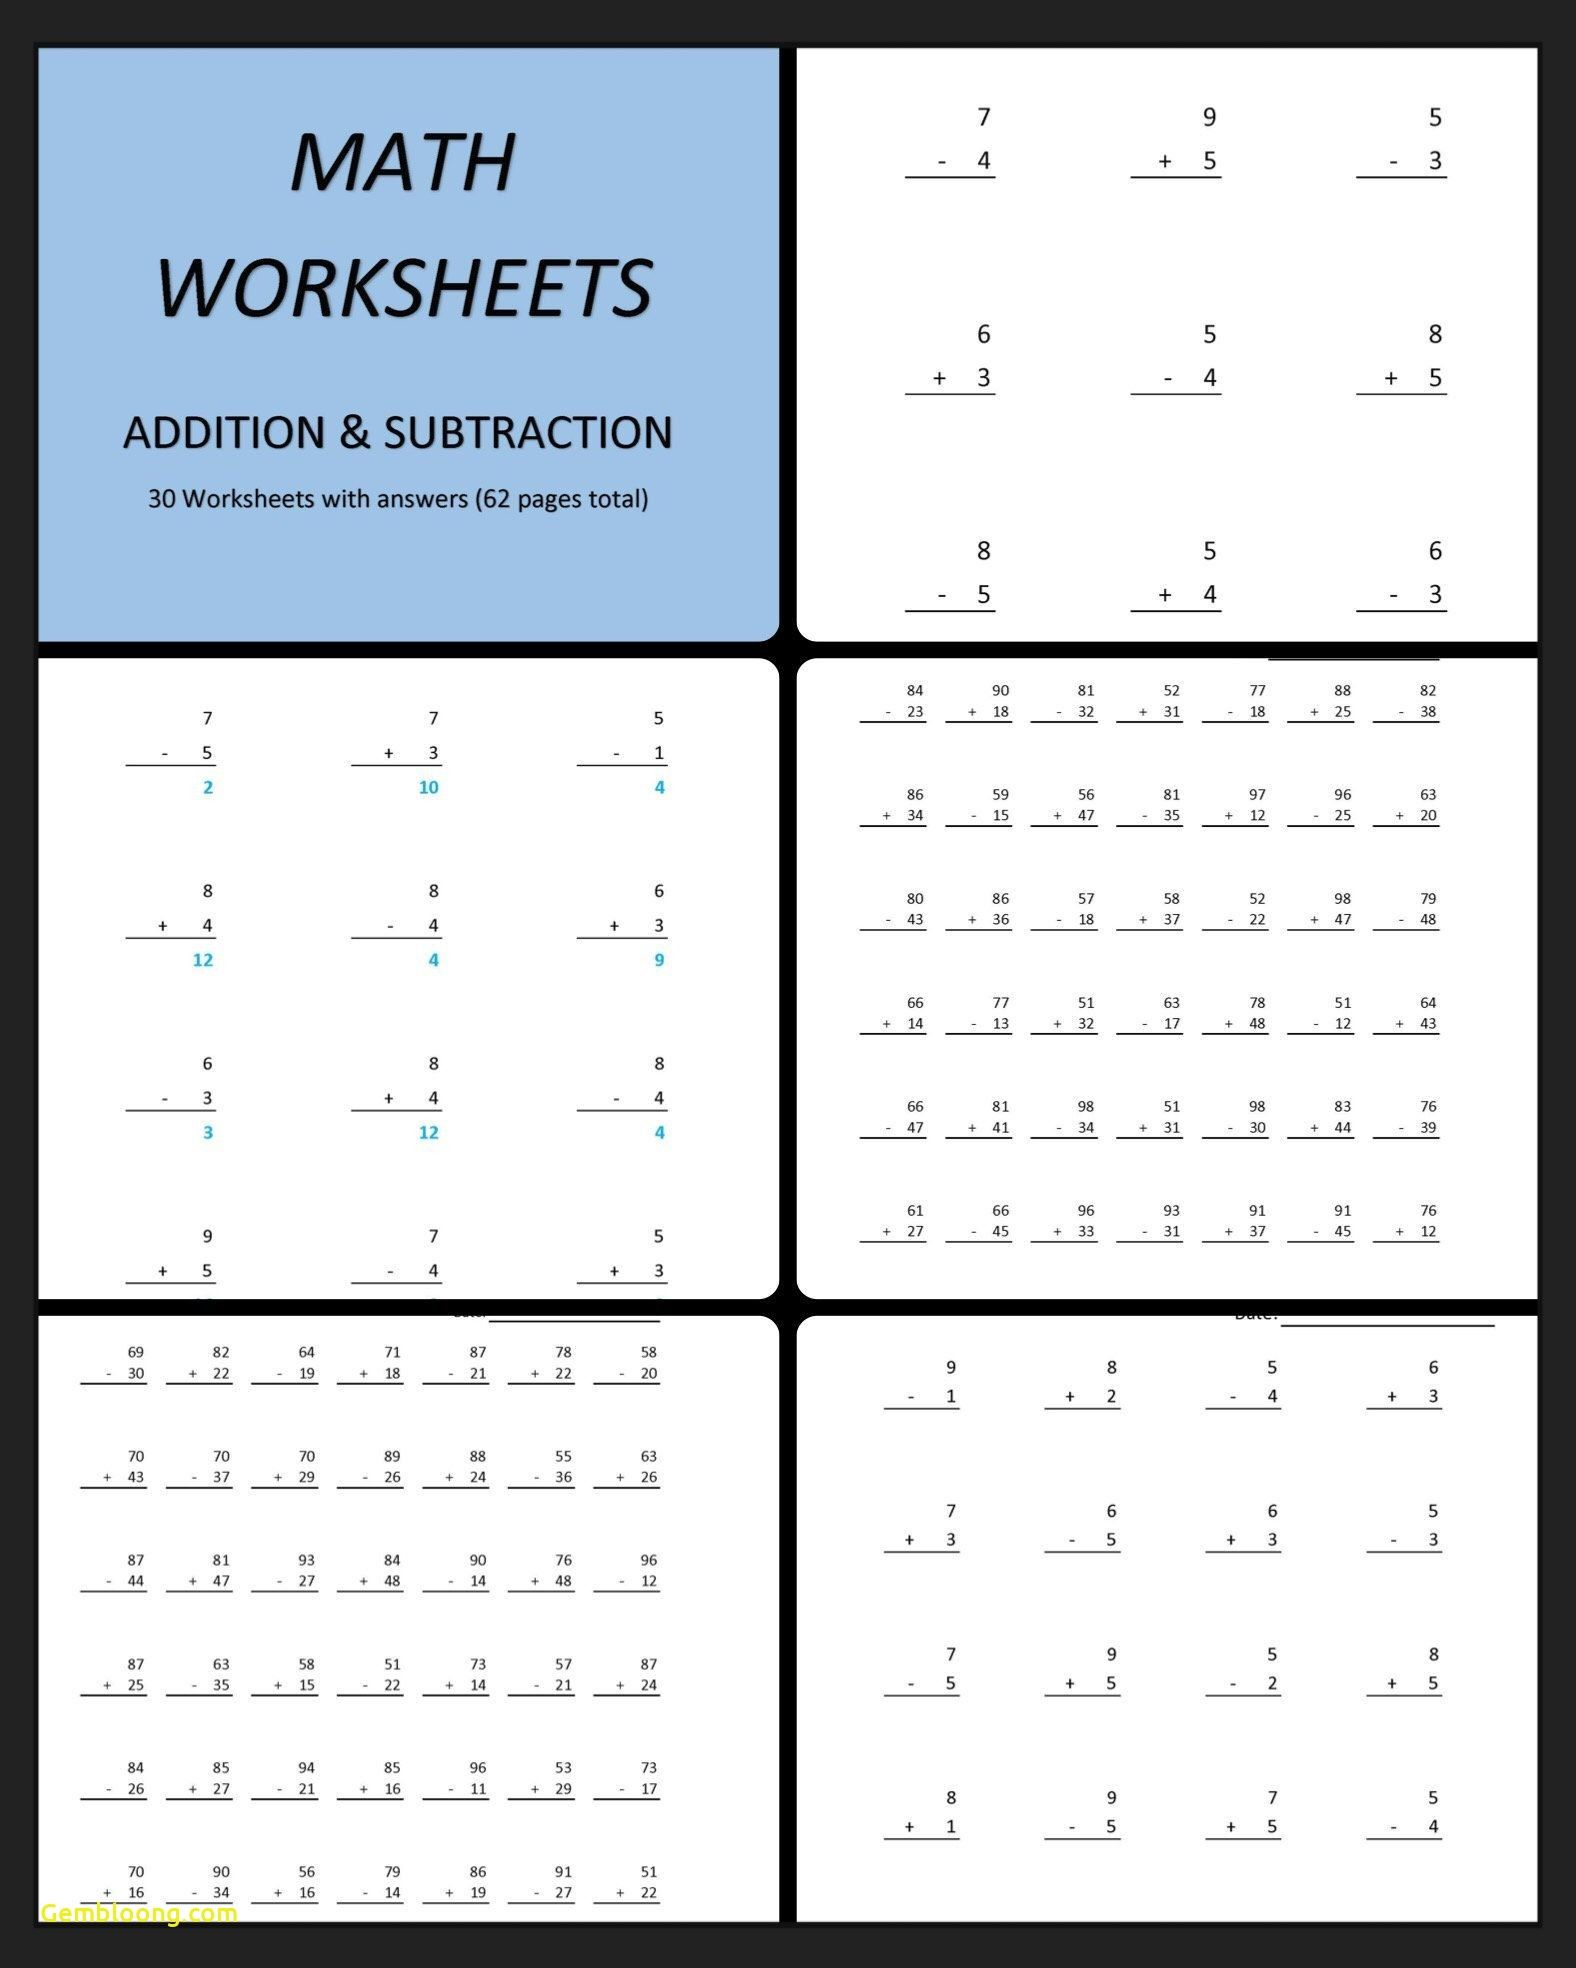 Classified Free Kindergarten Math Worksheets Addition Worksheet Printable Subtraction Worksheets Printable Math Worksheets Math Worksheets